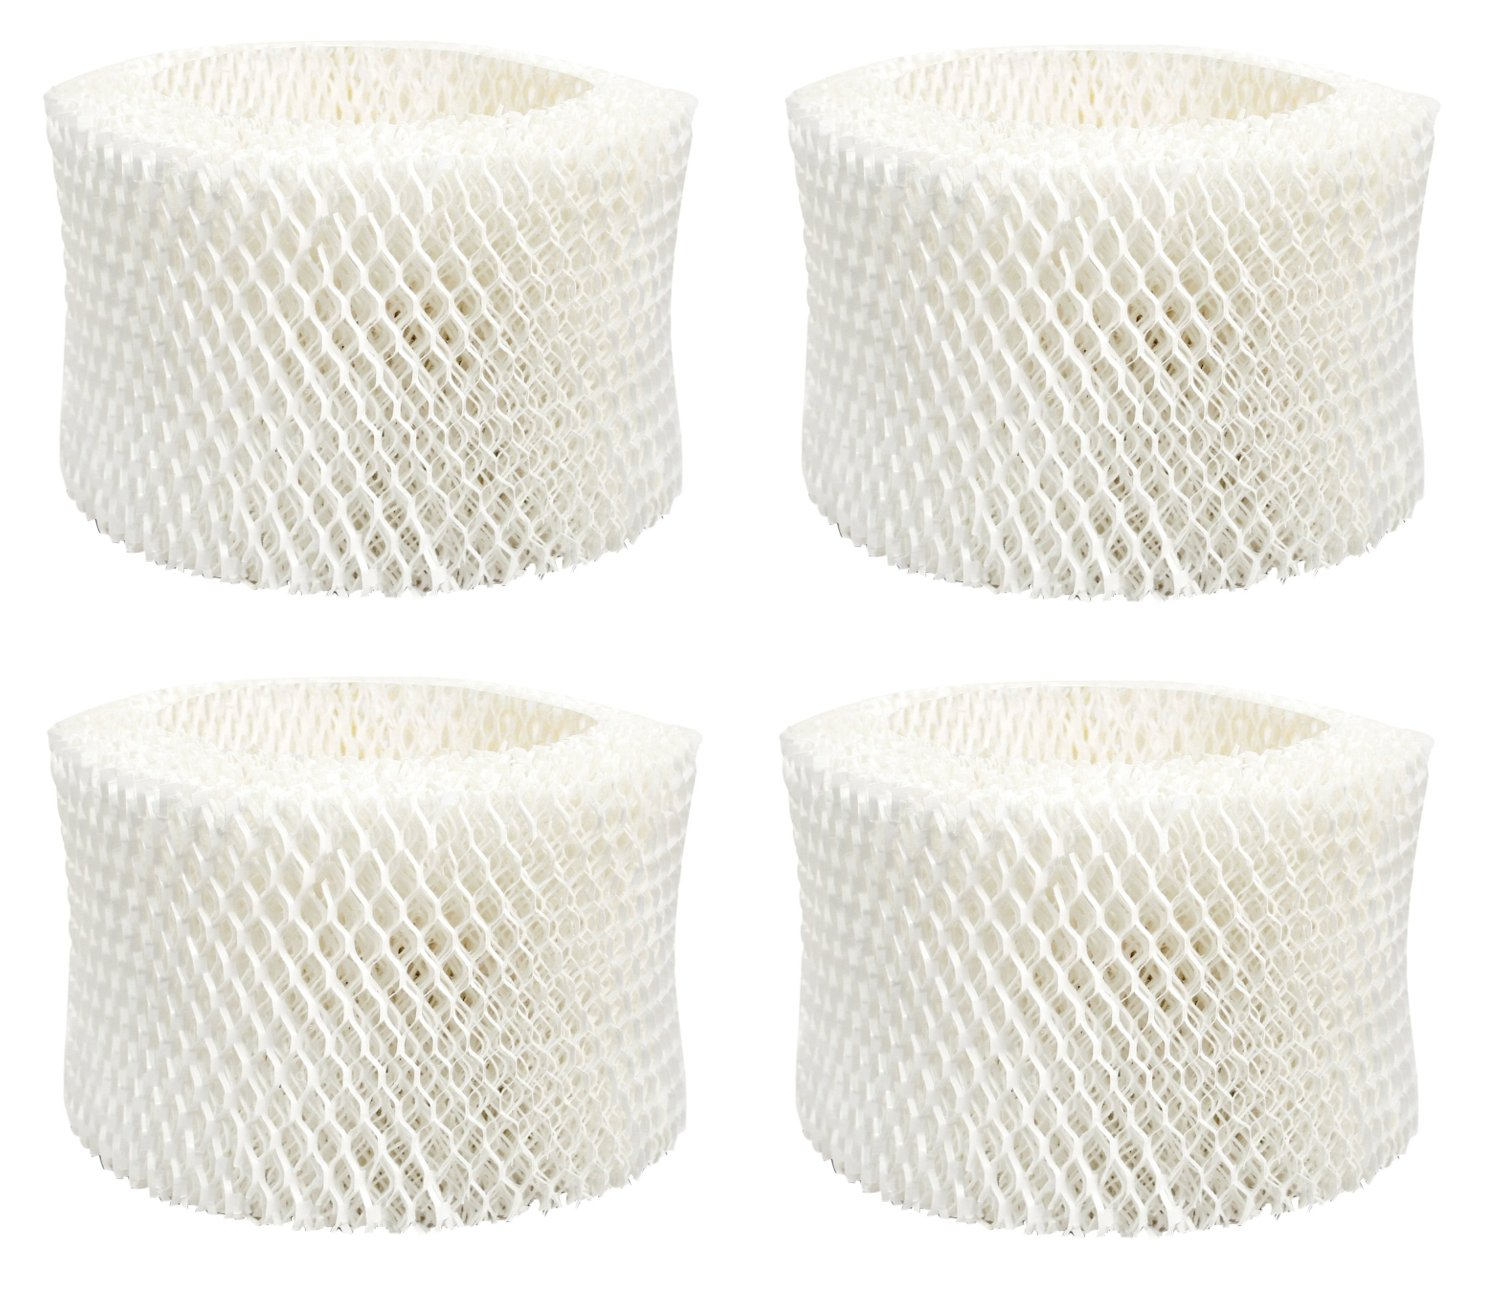 Original Filter Wick for Honeywell Portable Humidifiers - HC-888 by Honeywell